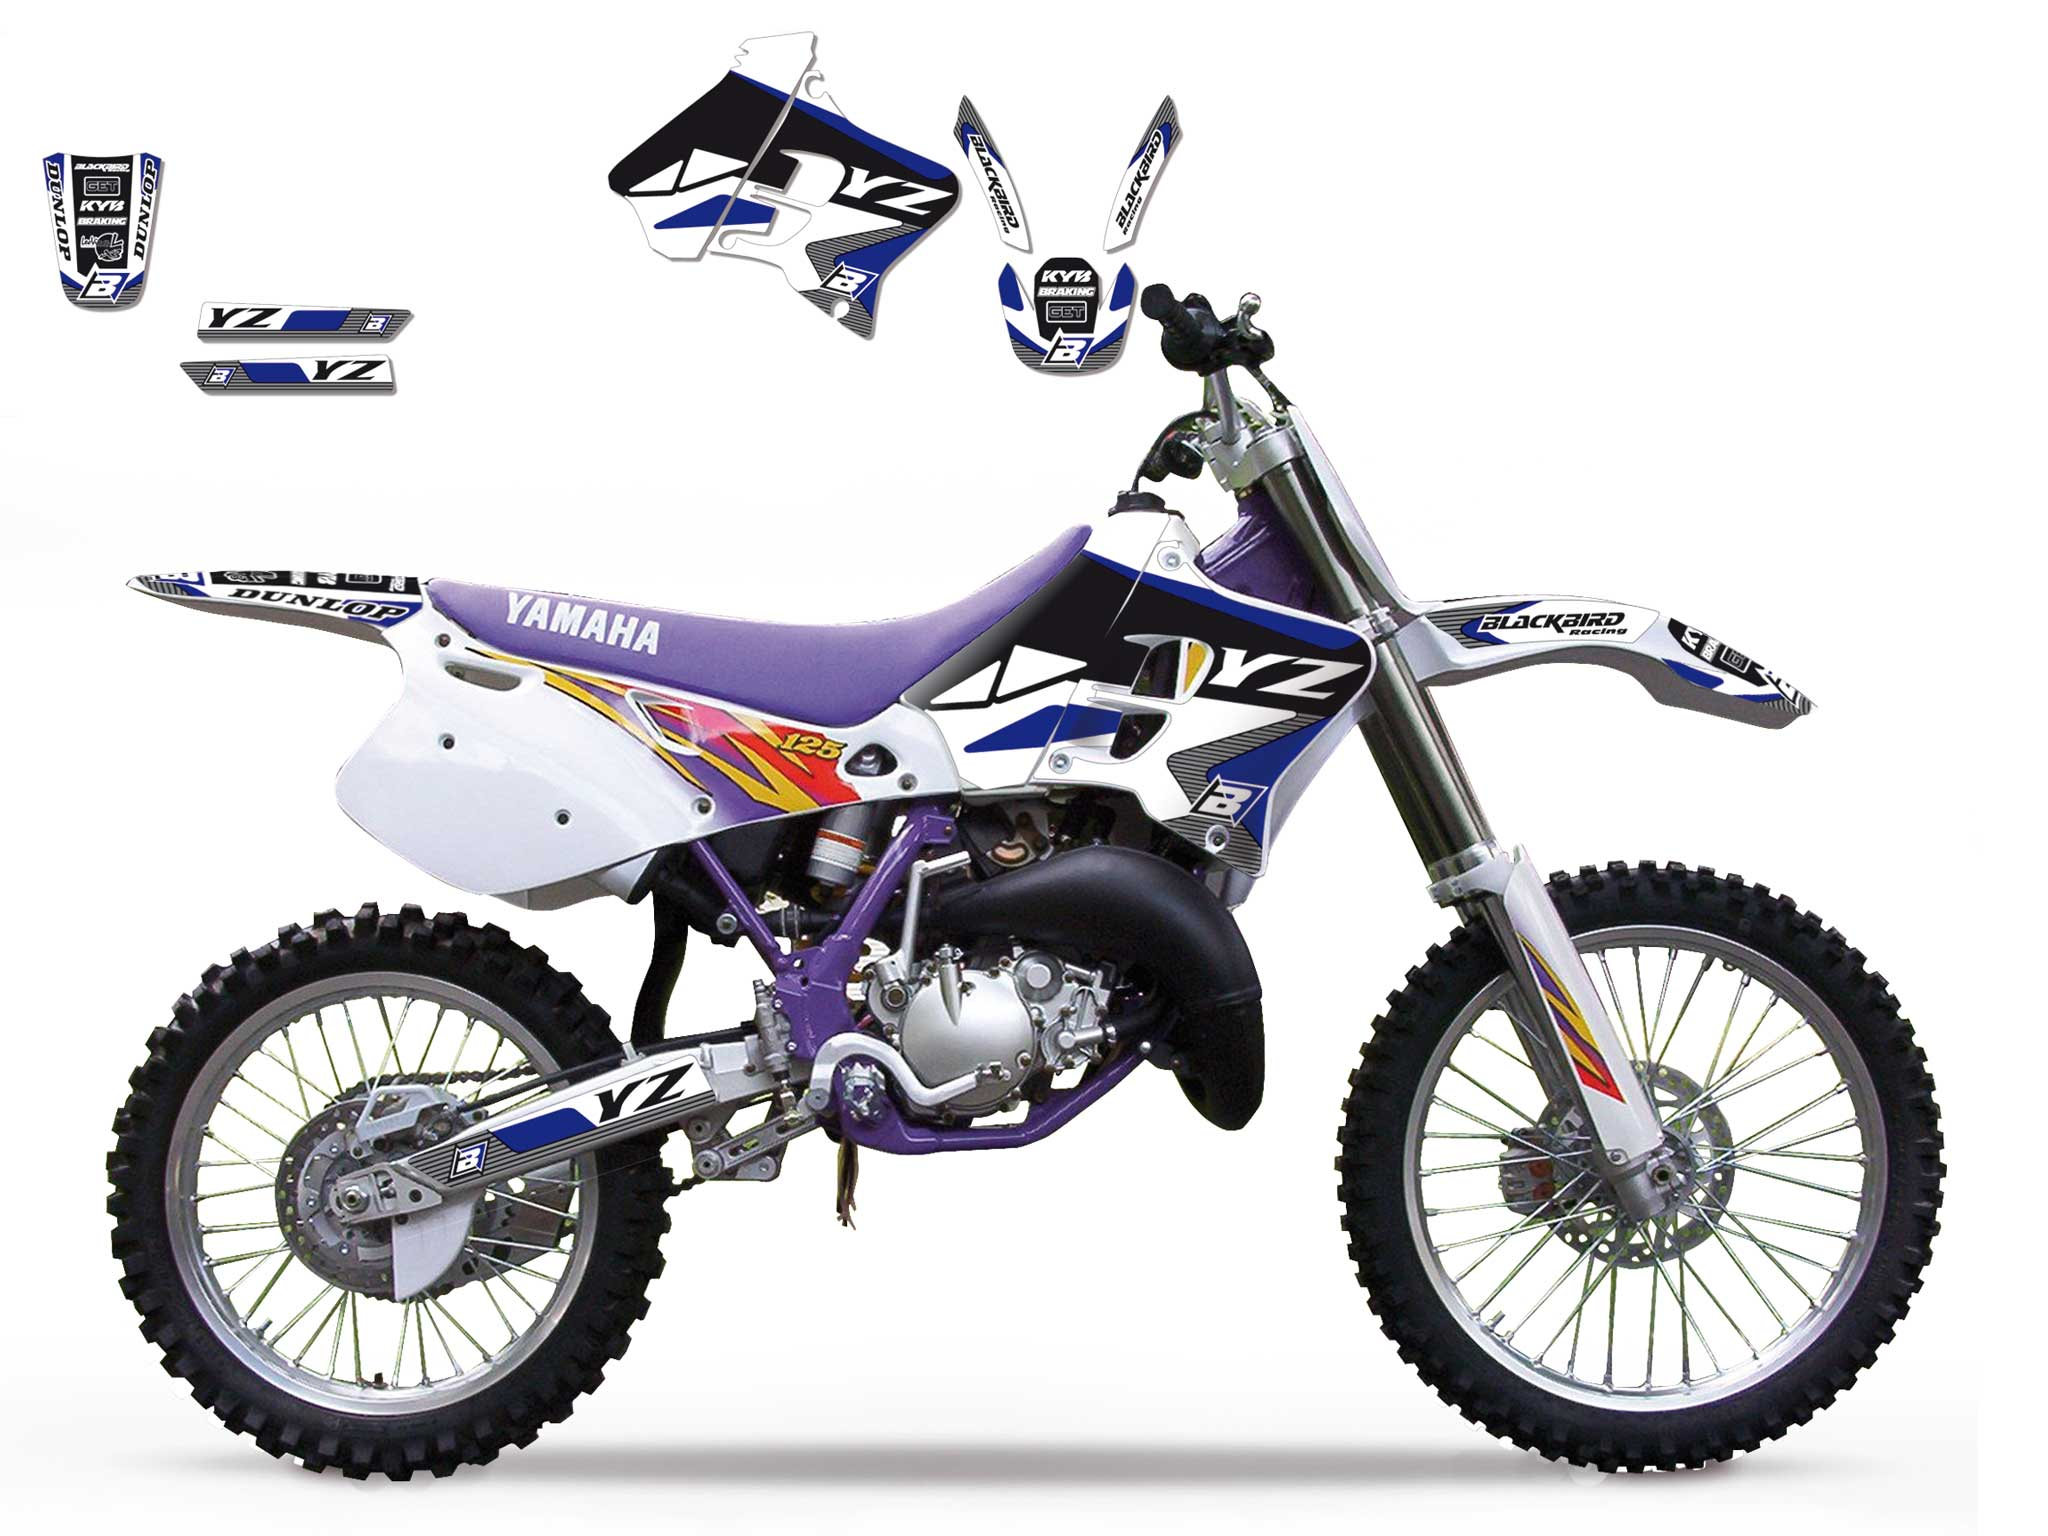 1993 yamaha yz 125 pics specs and information for Yz yamaha 125